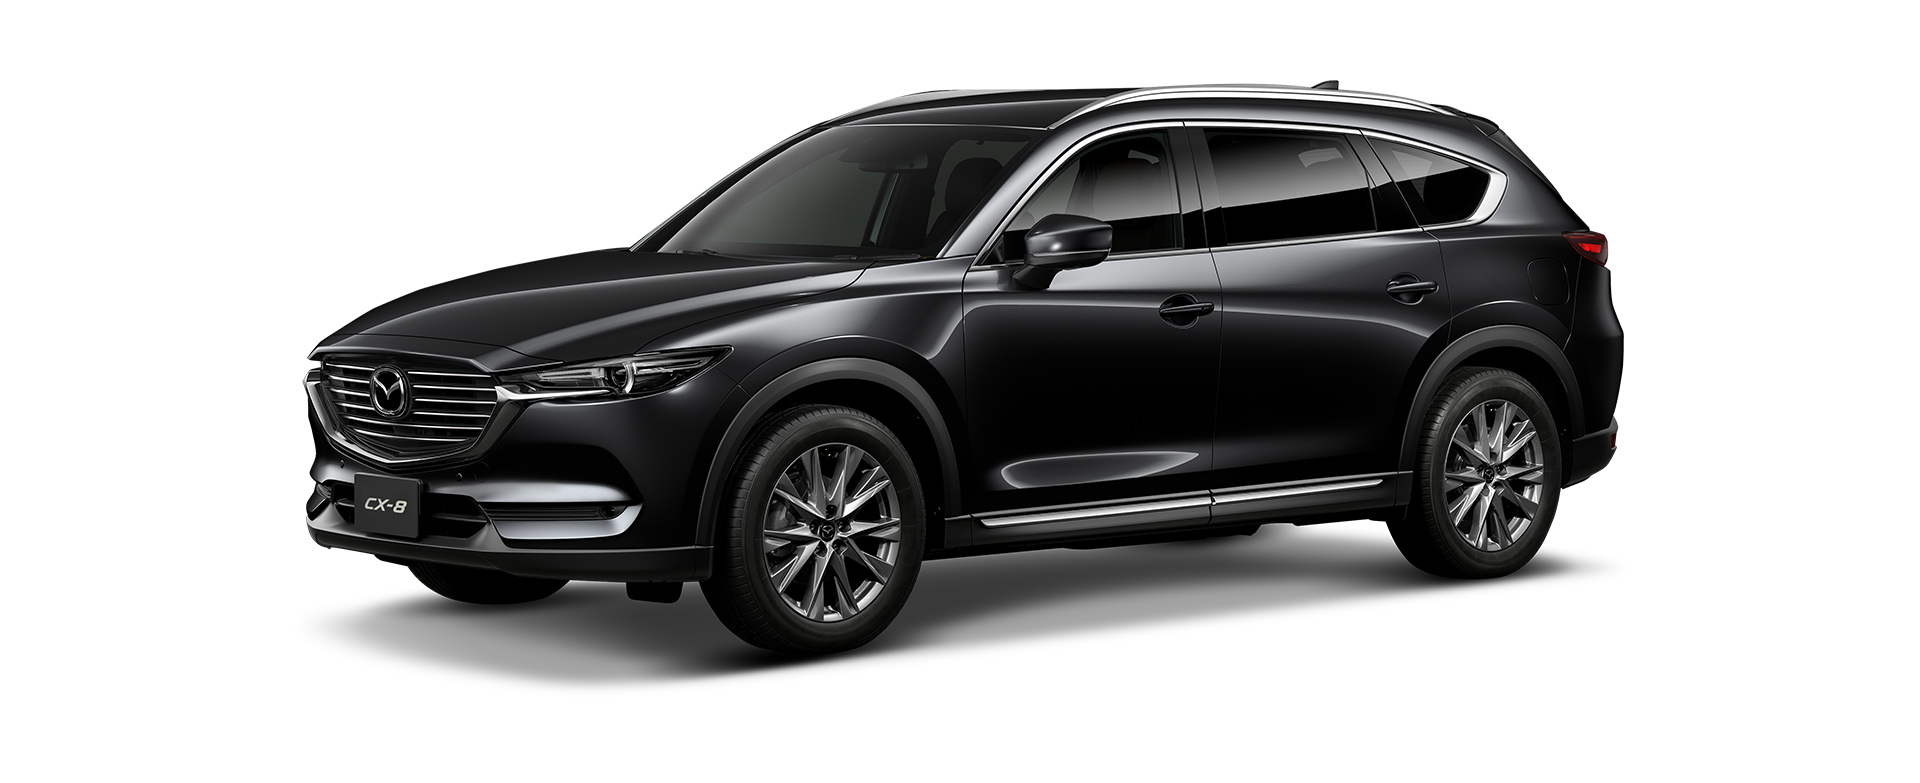 Mazda CX-8 Luxury SUV/Crossover 2019